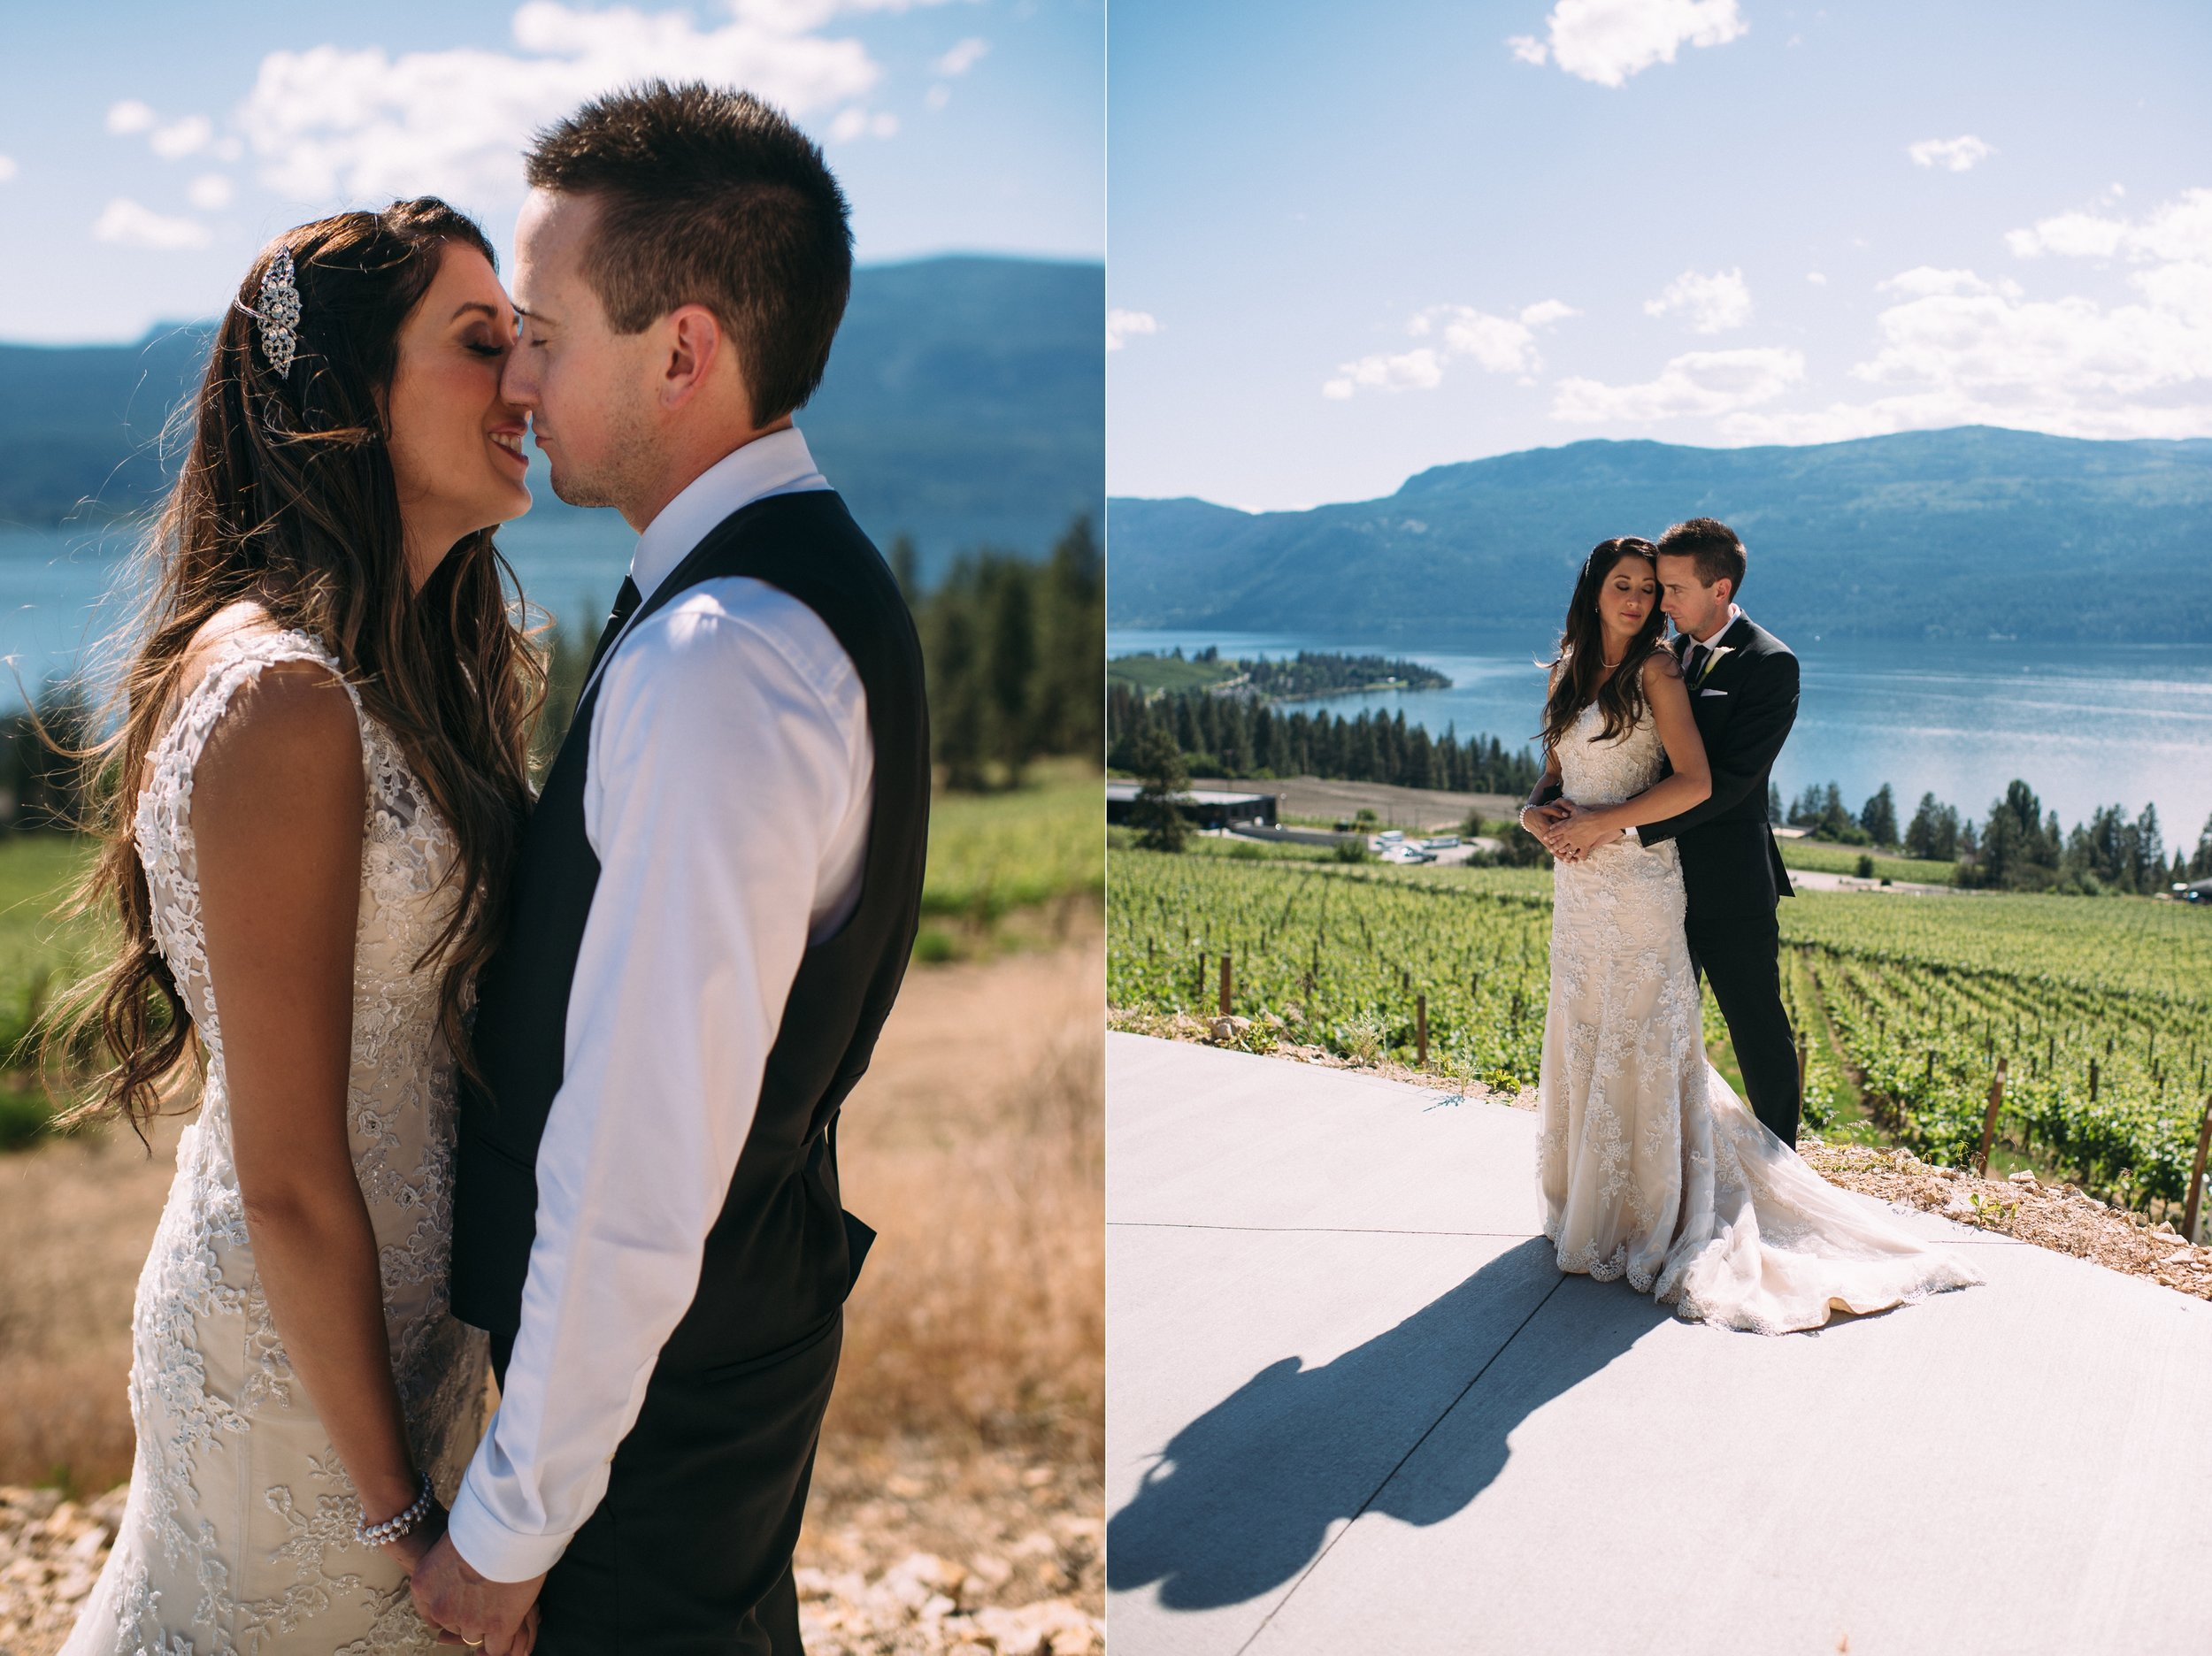 kaihla_tonai_intimate_wedding_elopement_photographer_3892